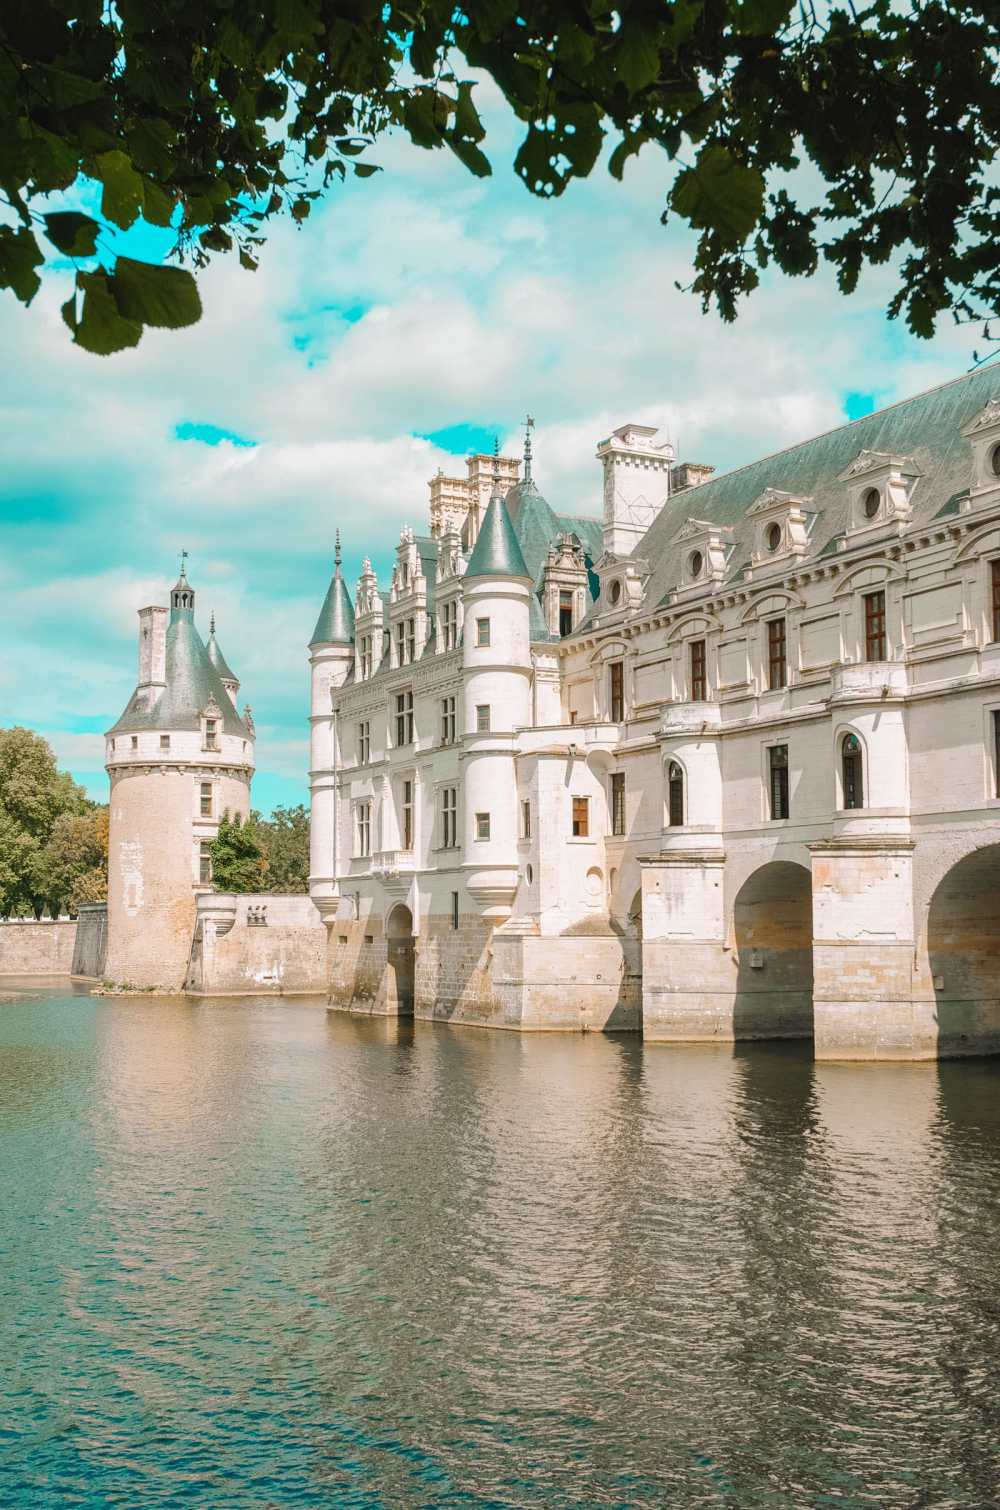 Pretty Castles In Europe To Visit (19)